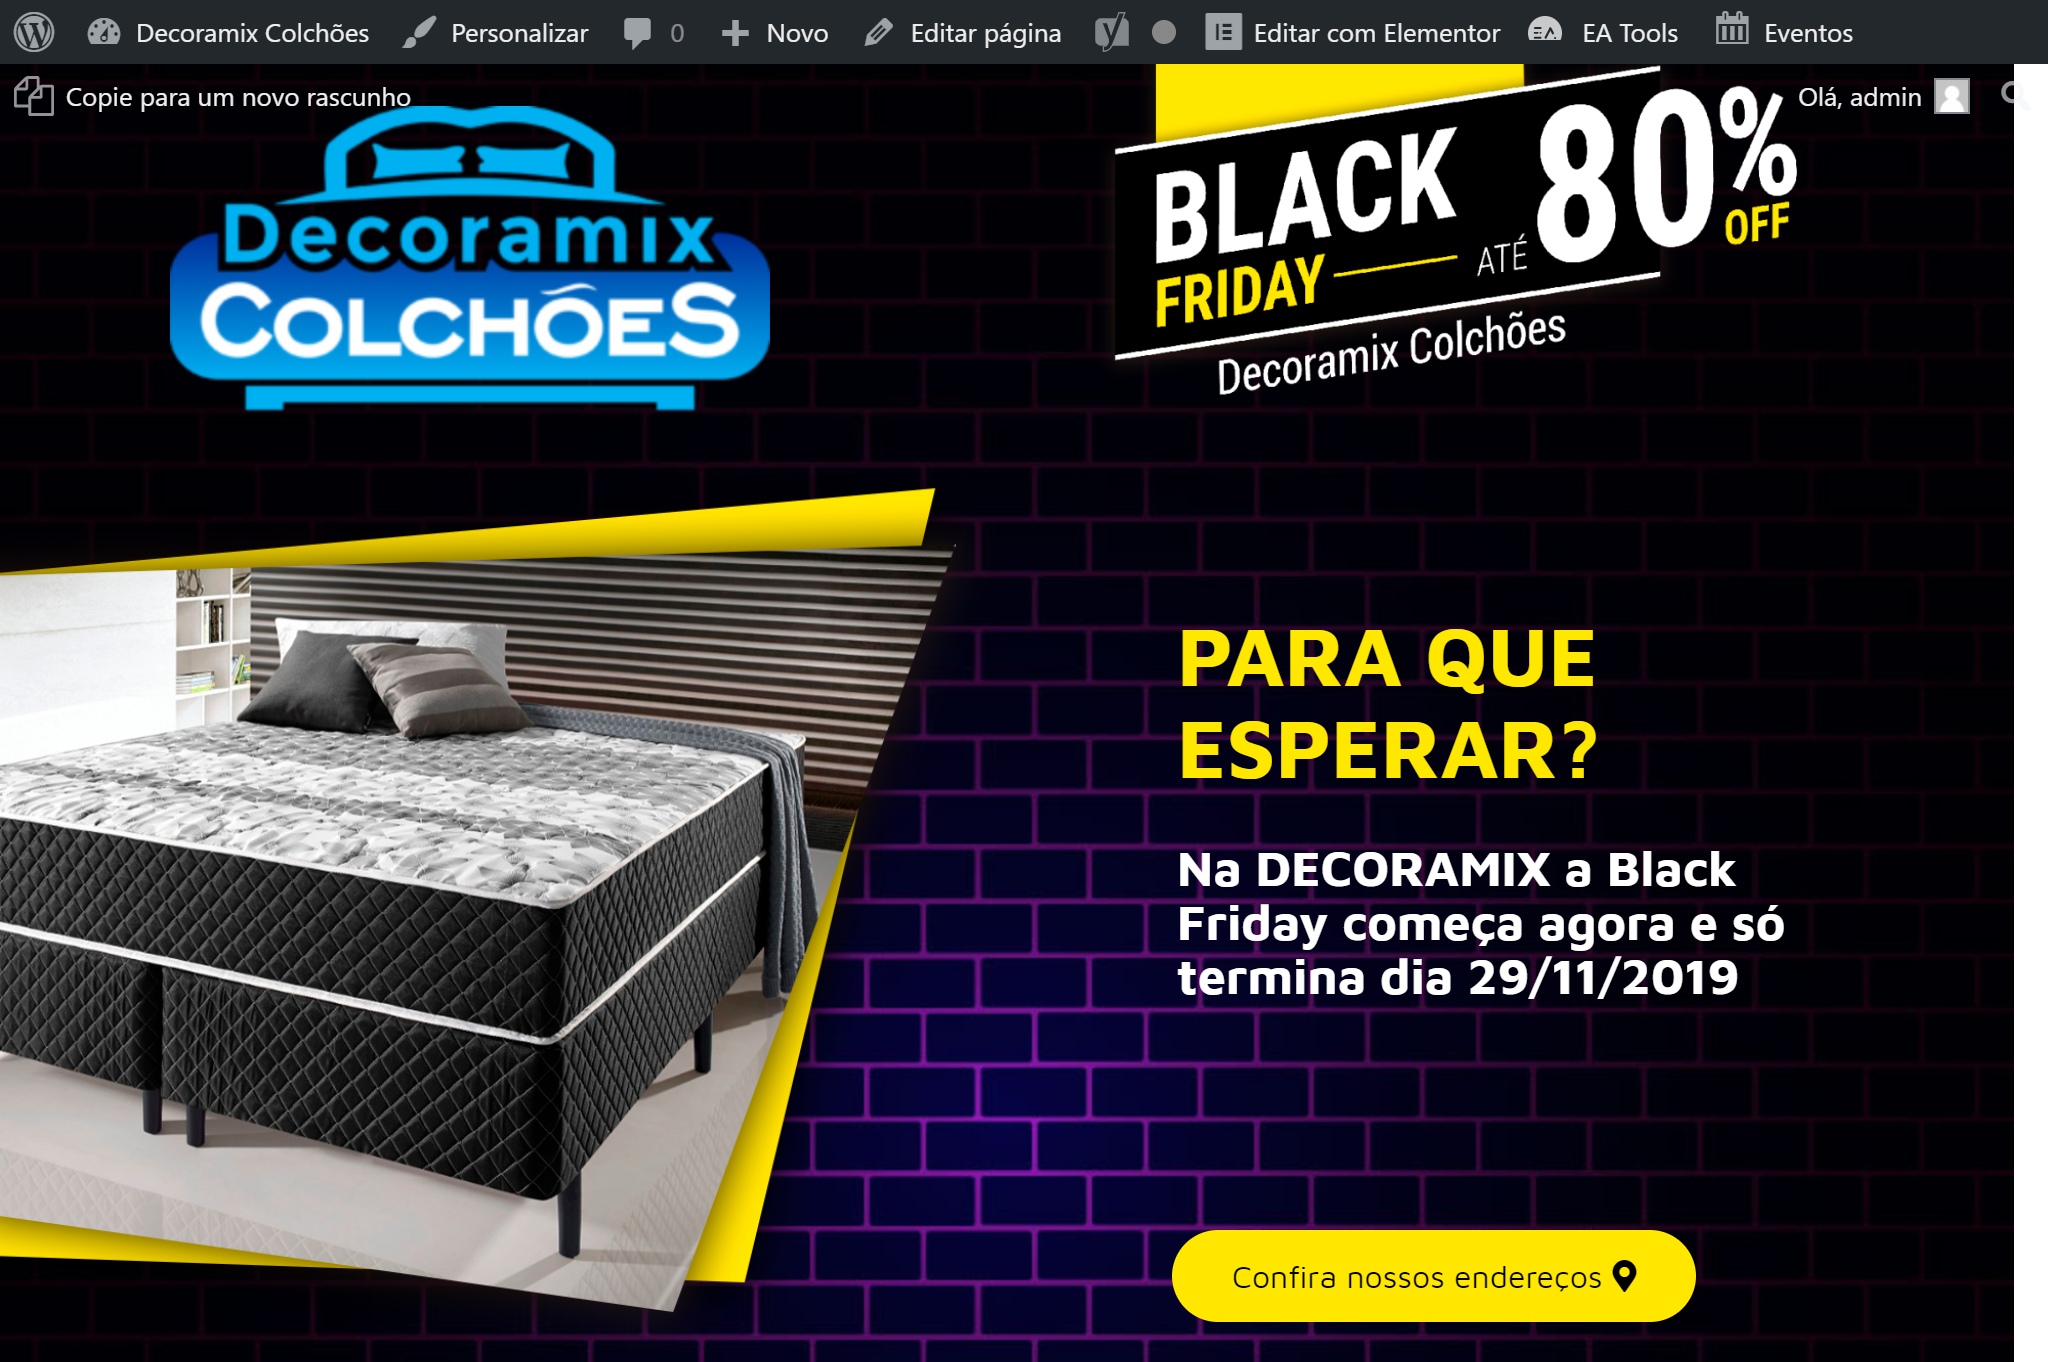 decoramixcolchoes.com.br_black-friday_